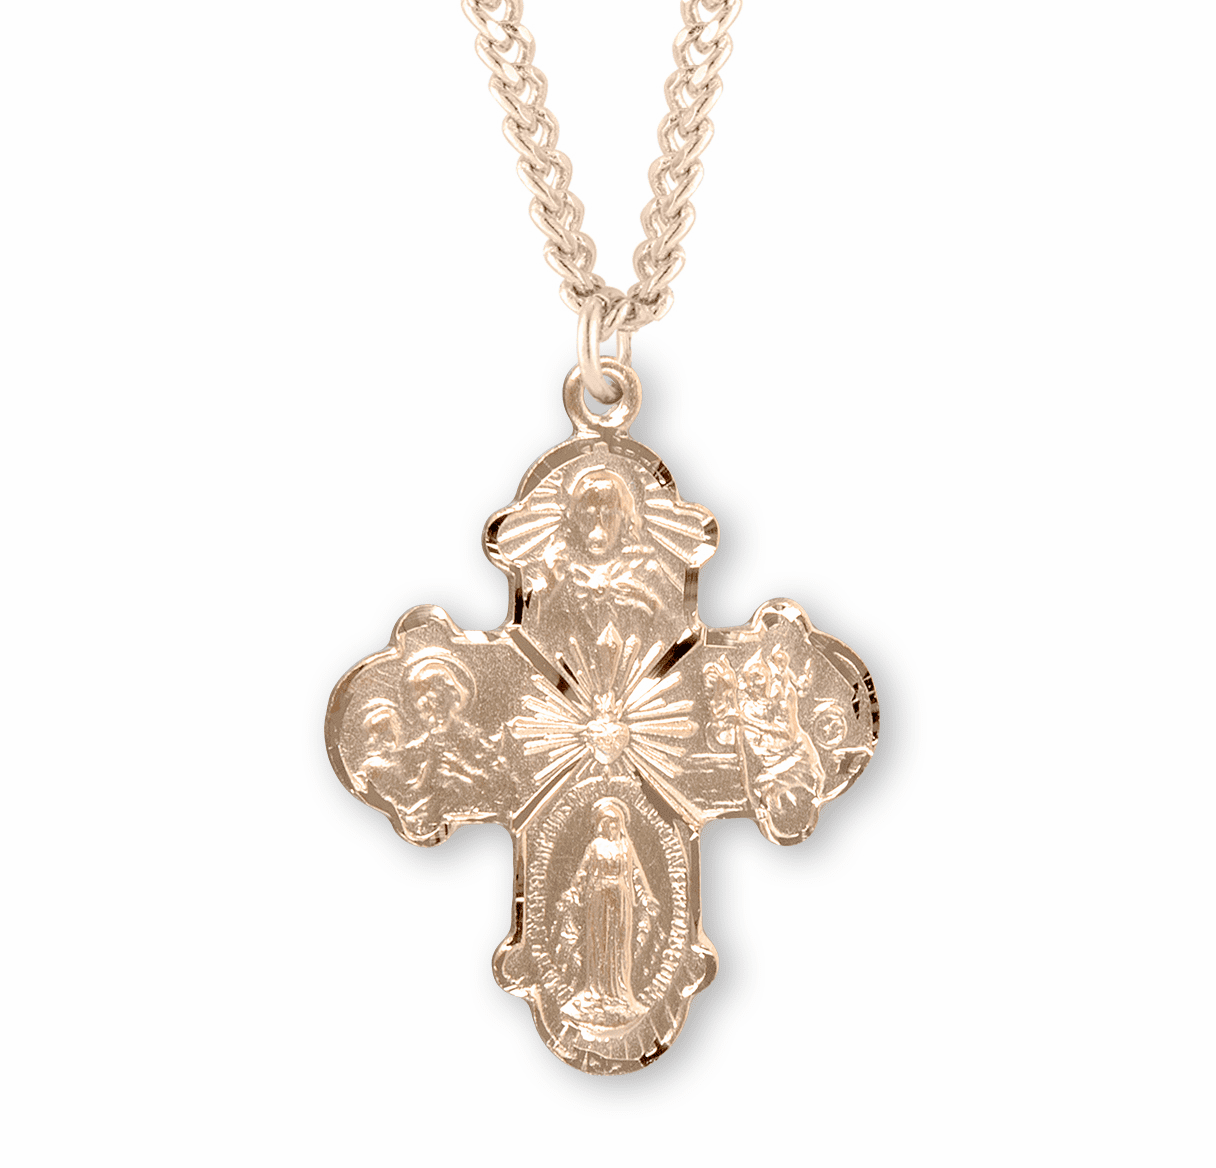 4-Way Gold/Sterling Cross Medal Necklace w/Sacred Heart Center by HMH Religious